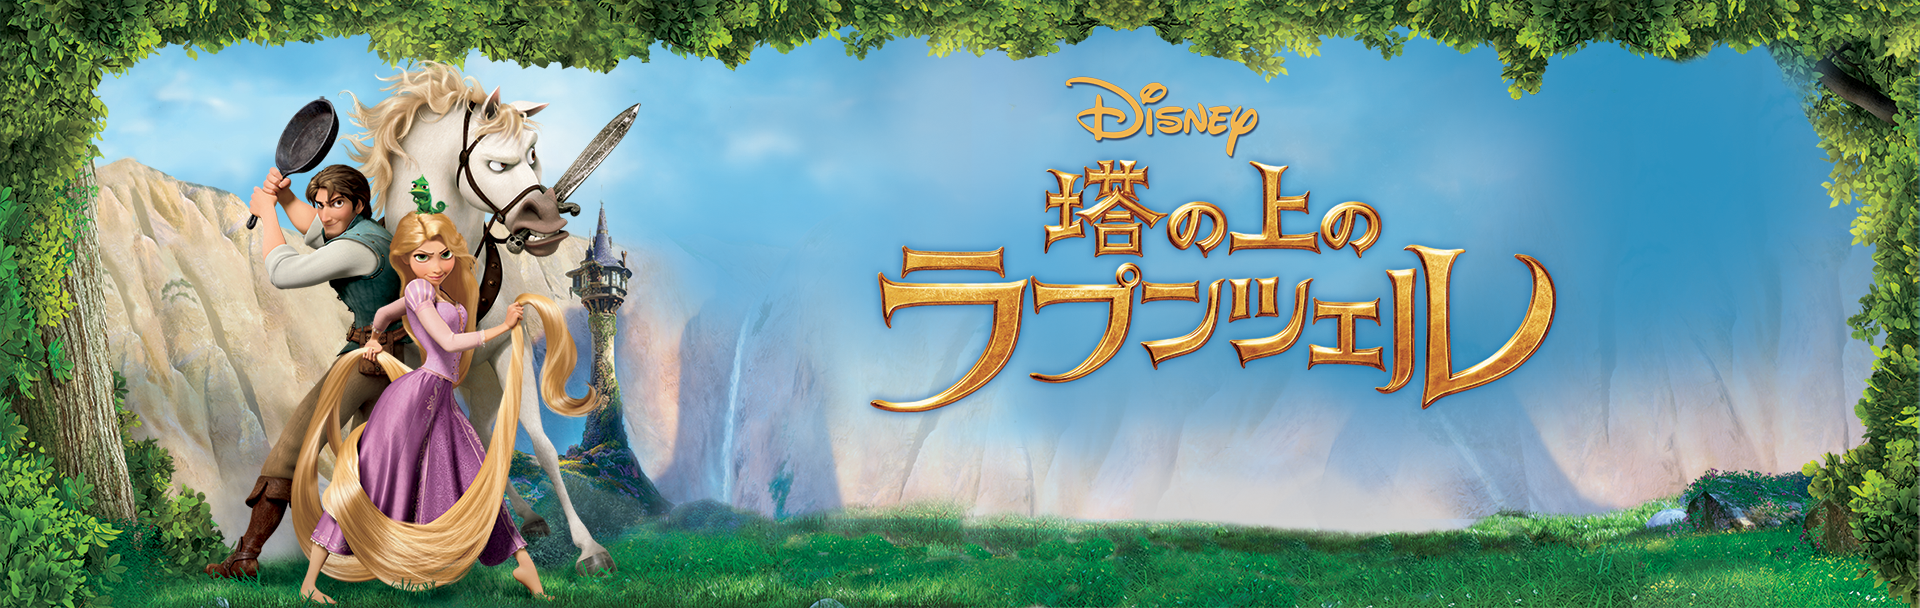 Tangled_2010_JPN_Keyart_Hero_L316_HD_1920x608-5c0ff442171d6be67e16a238